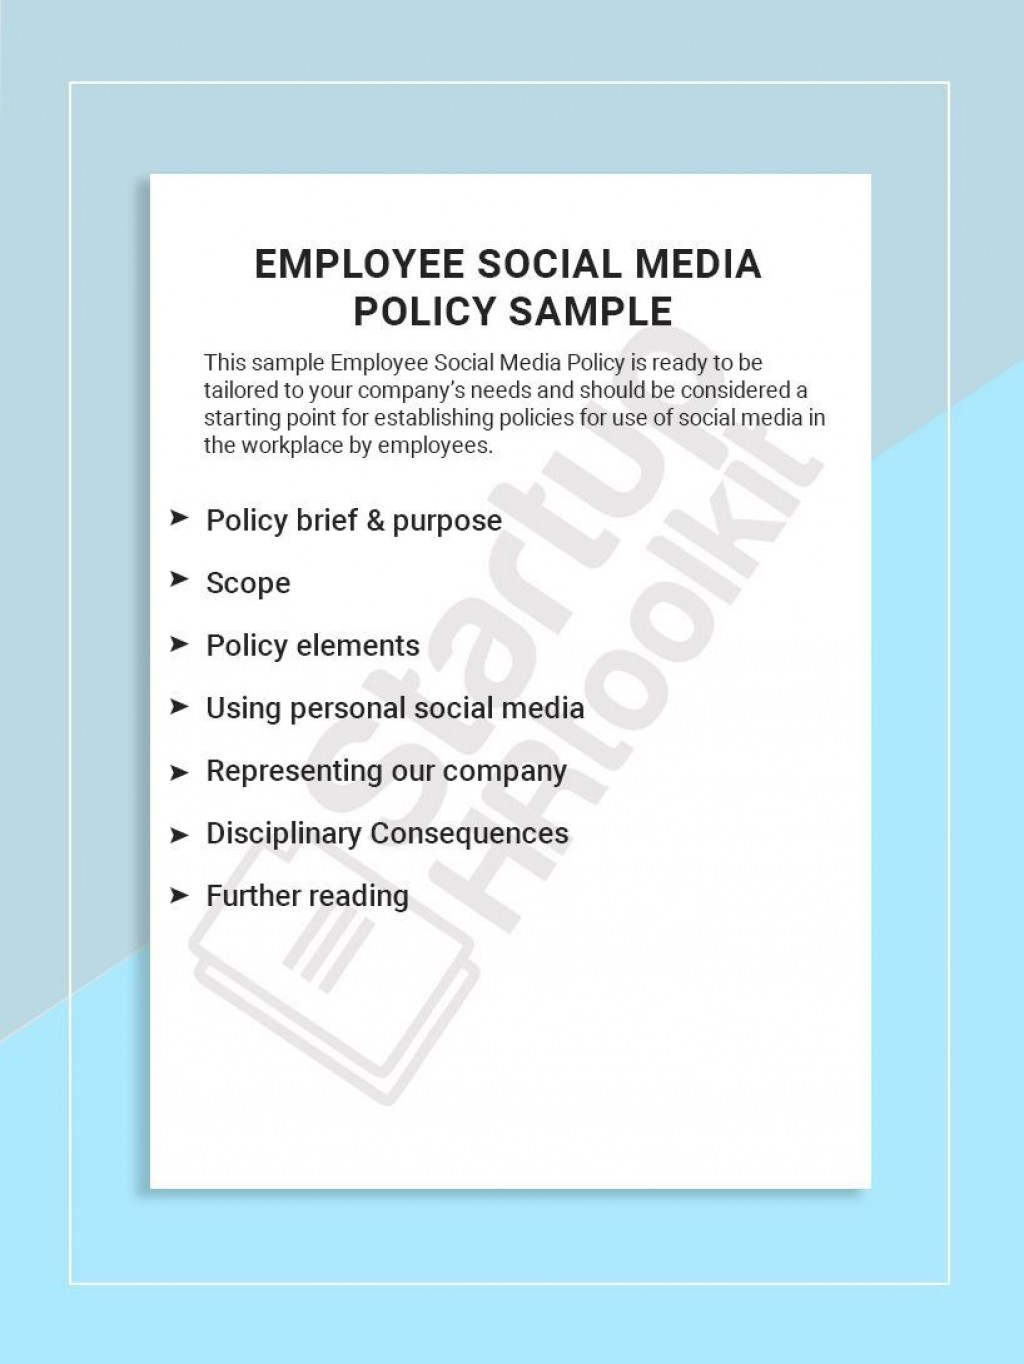 001 Best Social Media Policie Template High Def  Simple Policy Australia Example For Small BusinesLarge